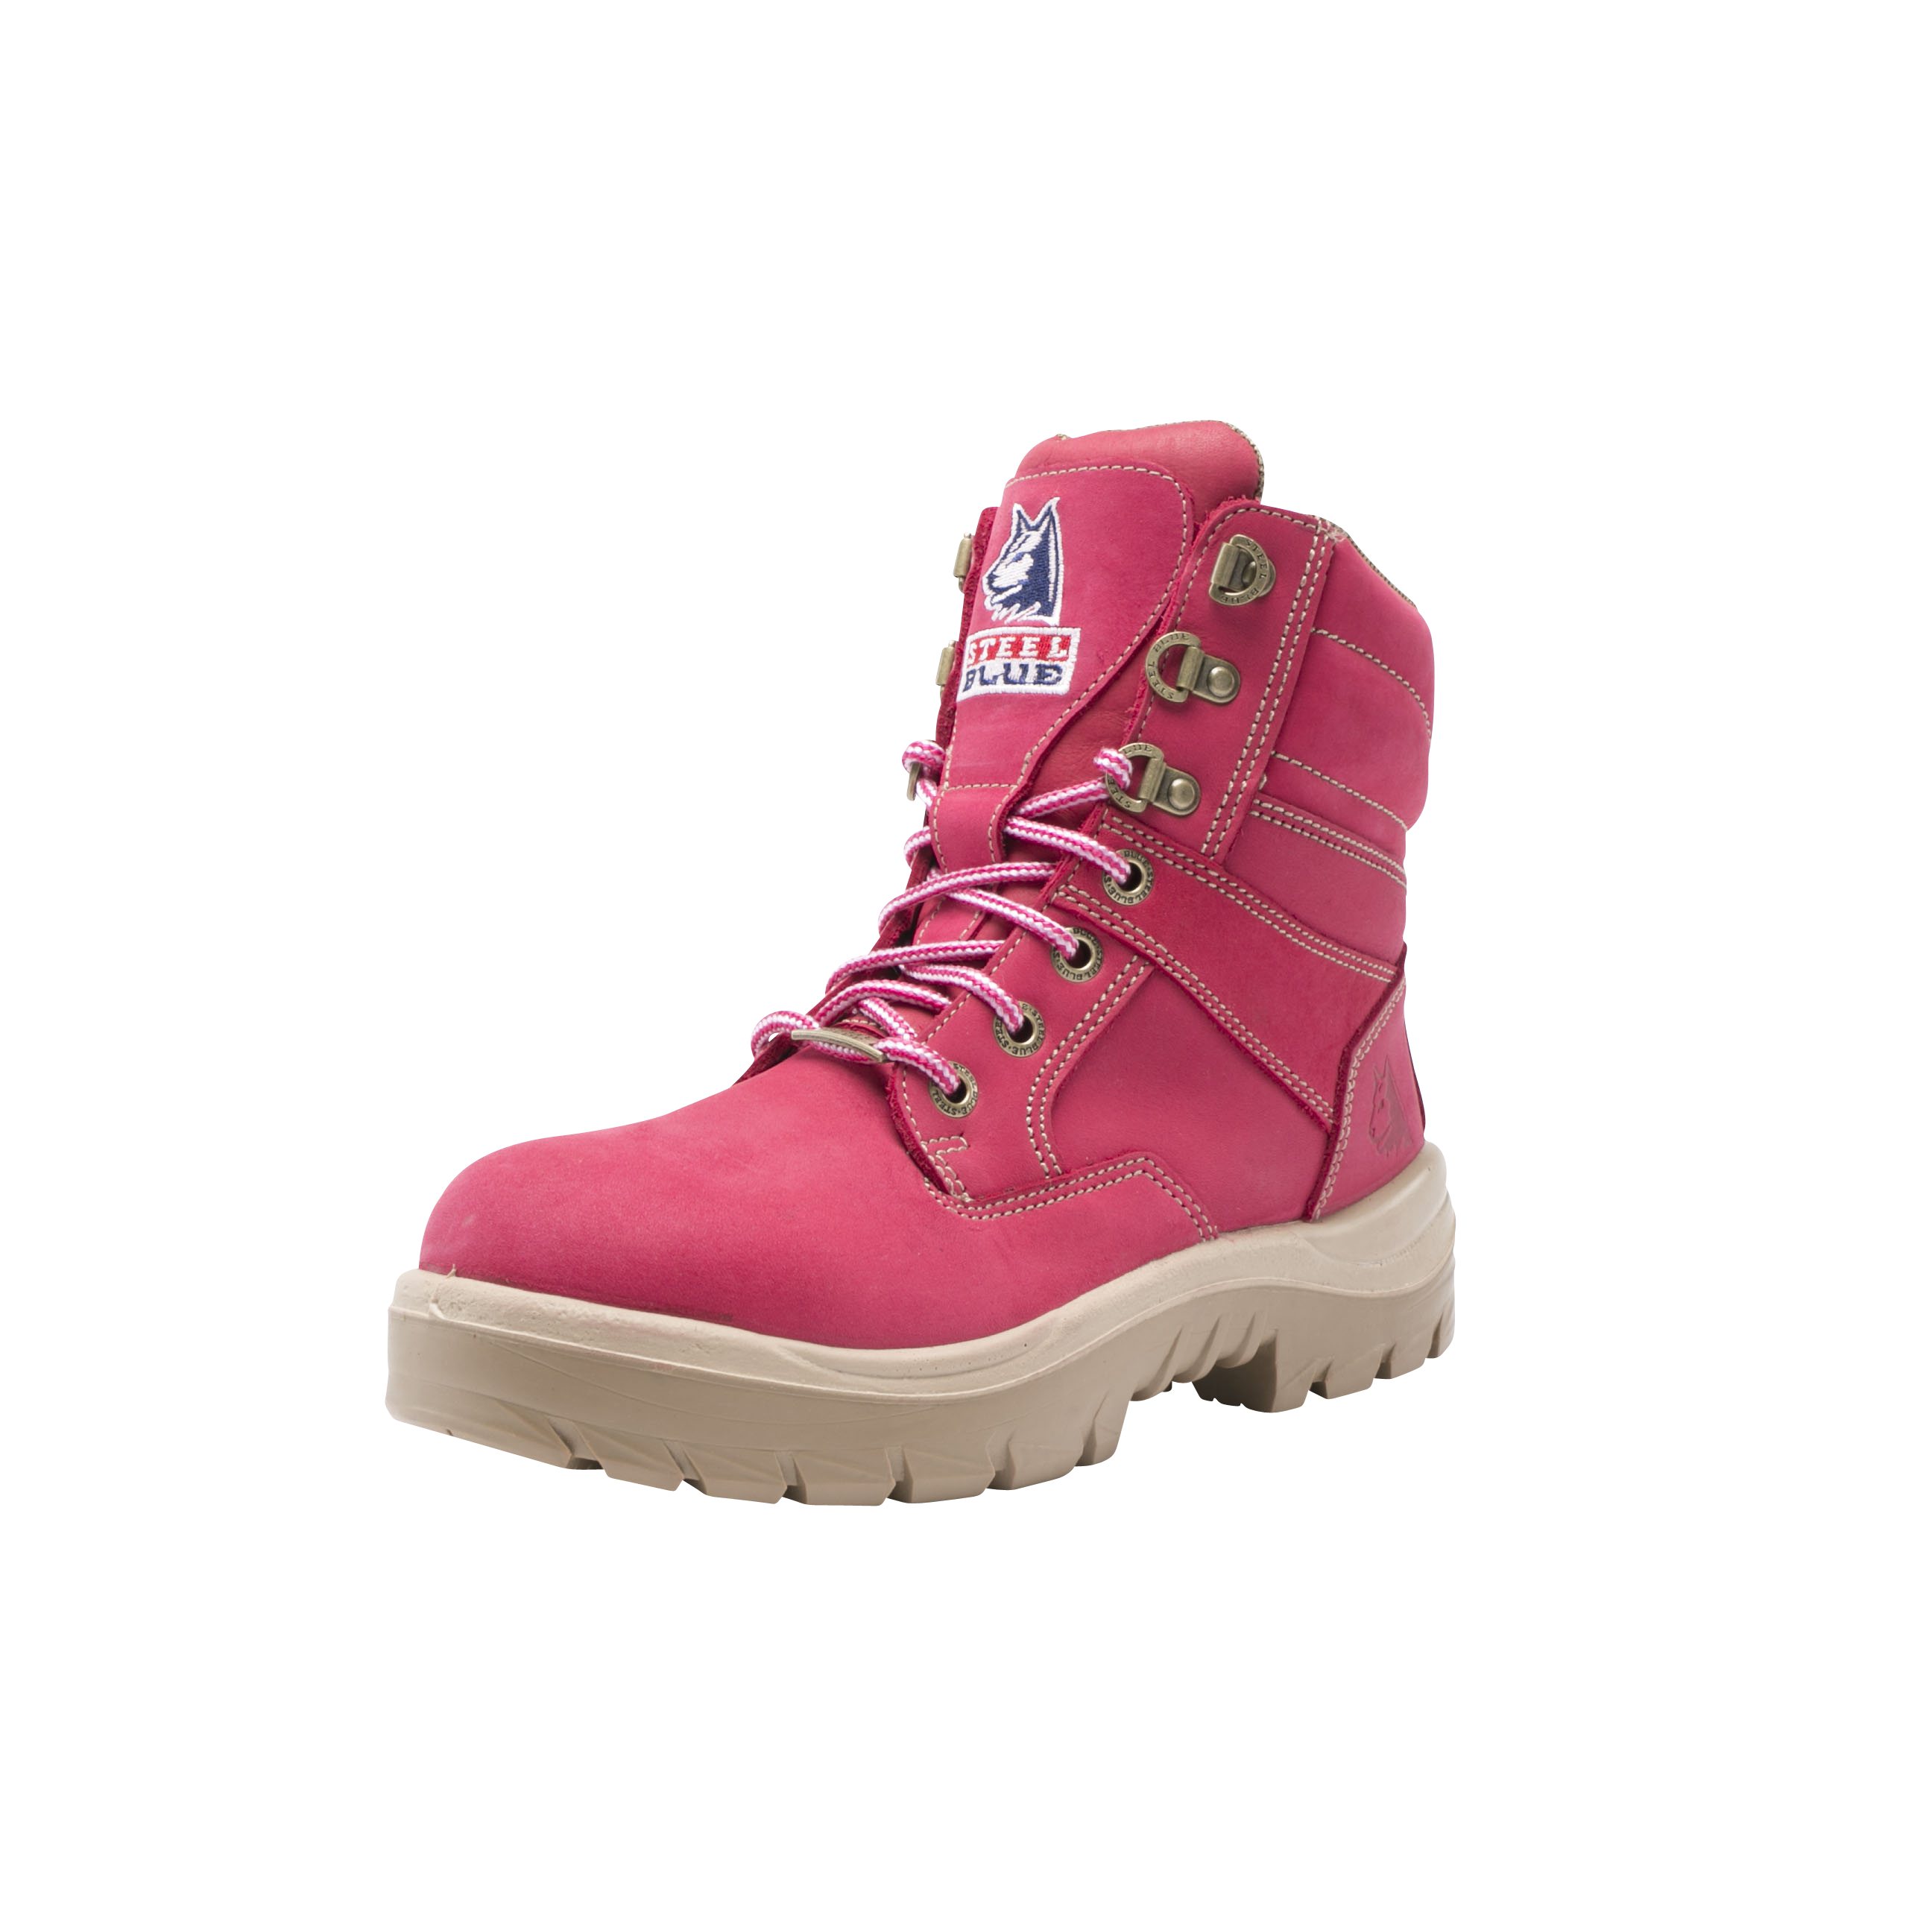 f4658e93d7a Southern Cross Pink Ladies Work & Safety Boots | Steel Blue NZ